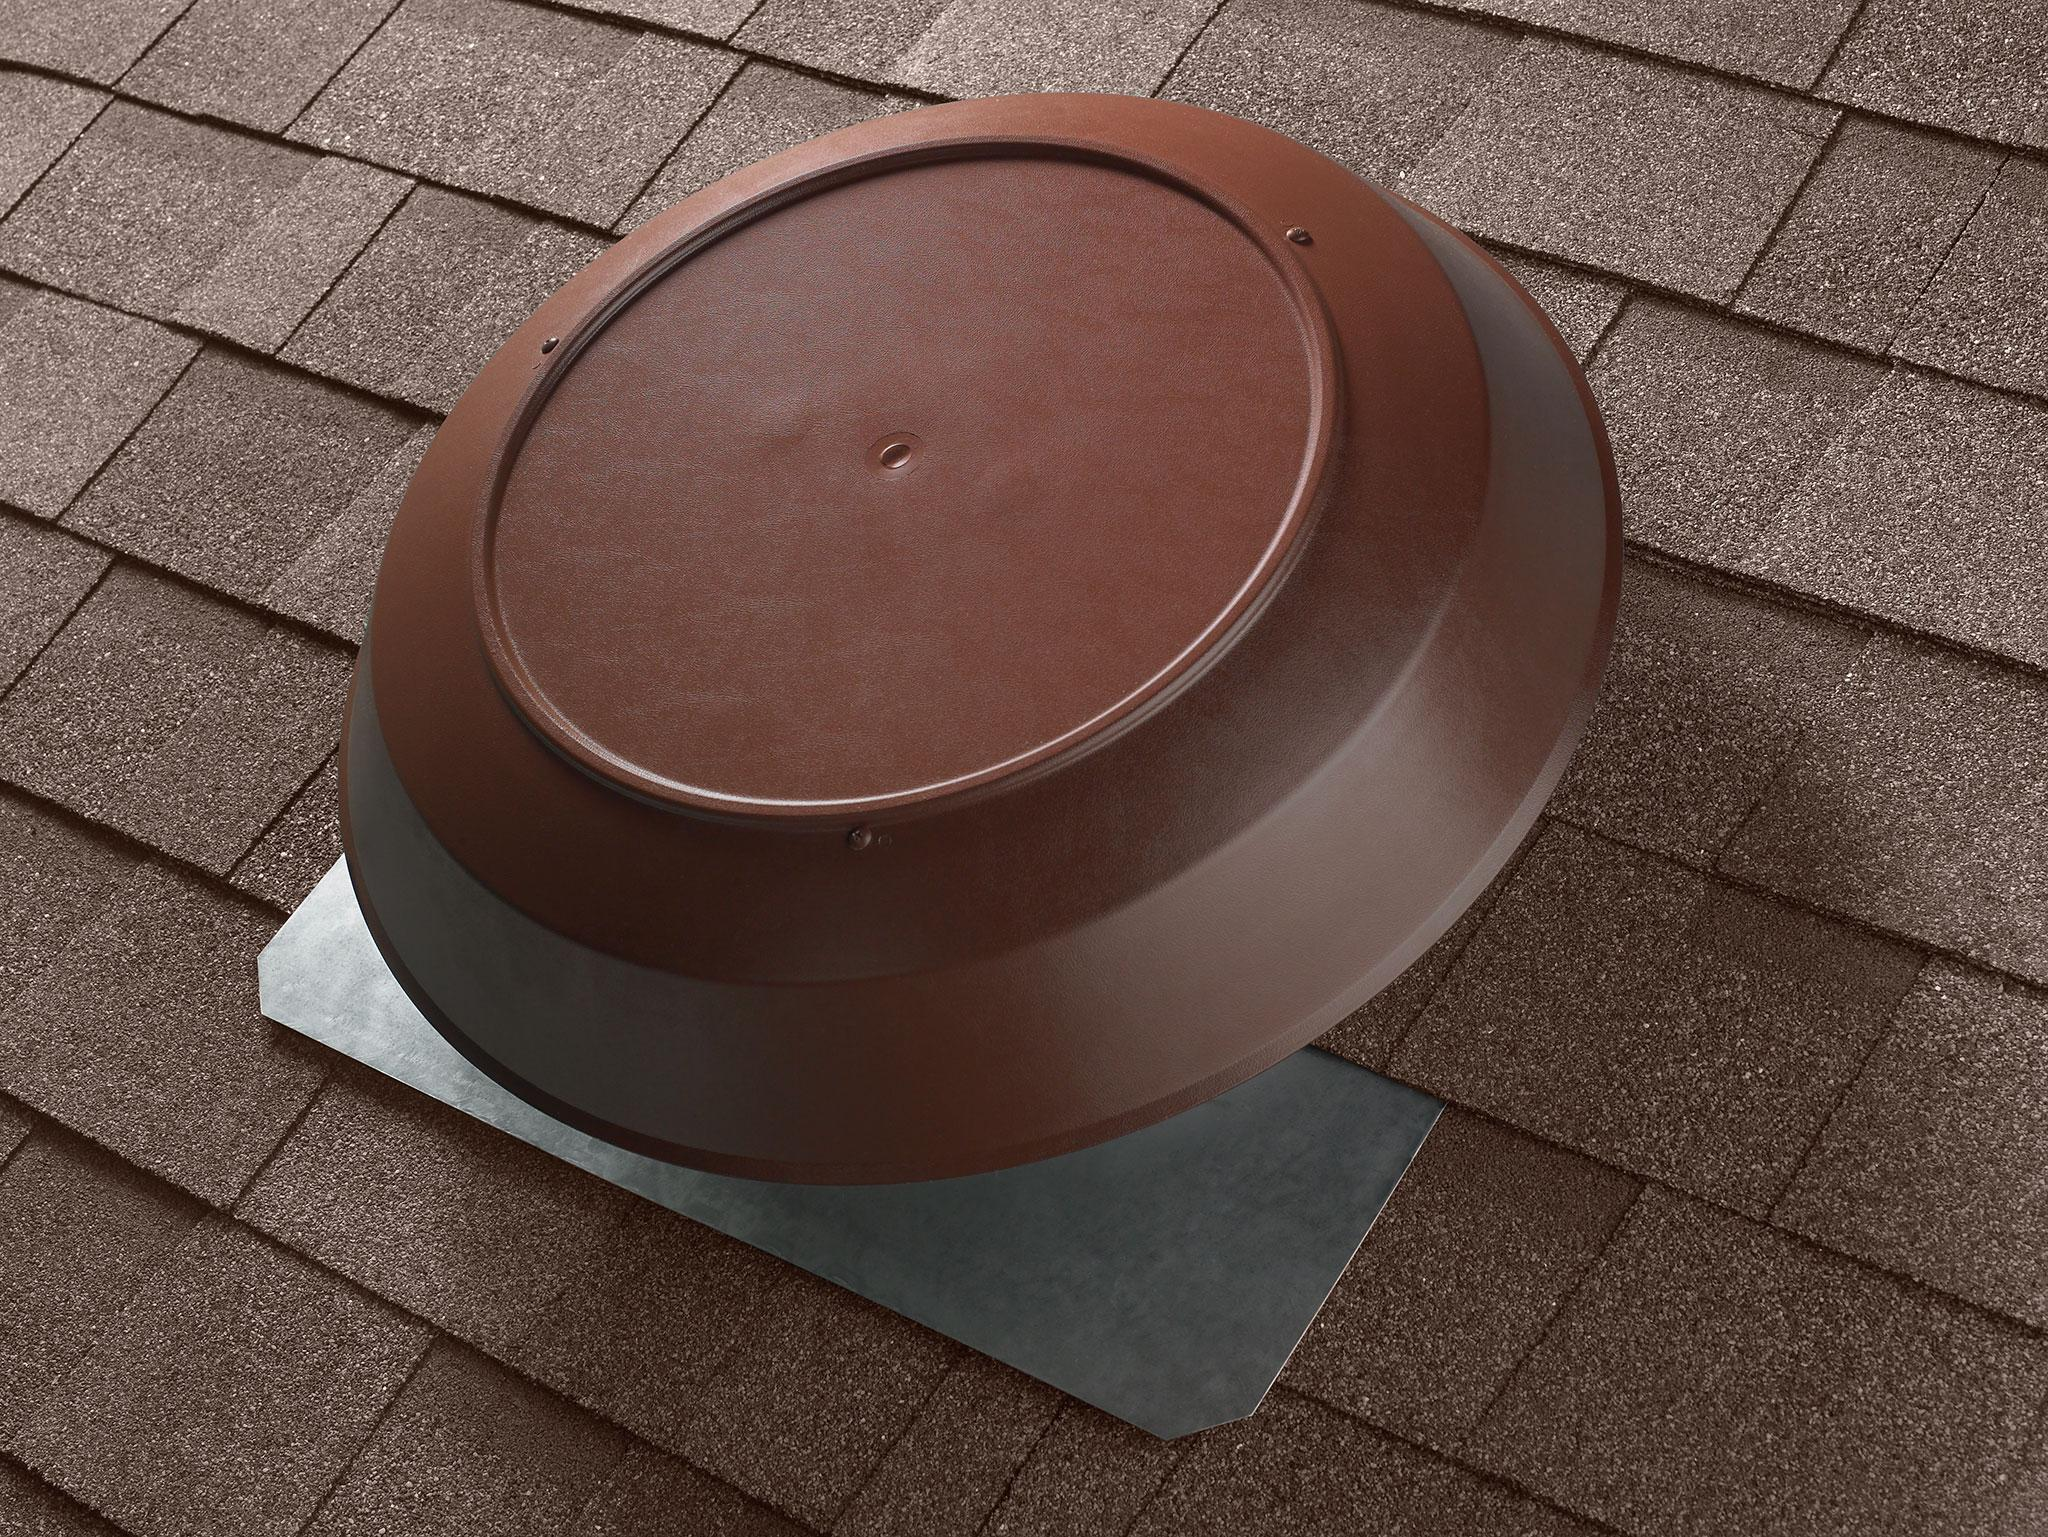 Broan 355bk Roof Mount 120 Volt Powered Attic Ventilator 1200 Cfm House Fuse Box Wiring An 350b 12 1050 Brown Dome